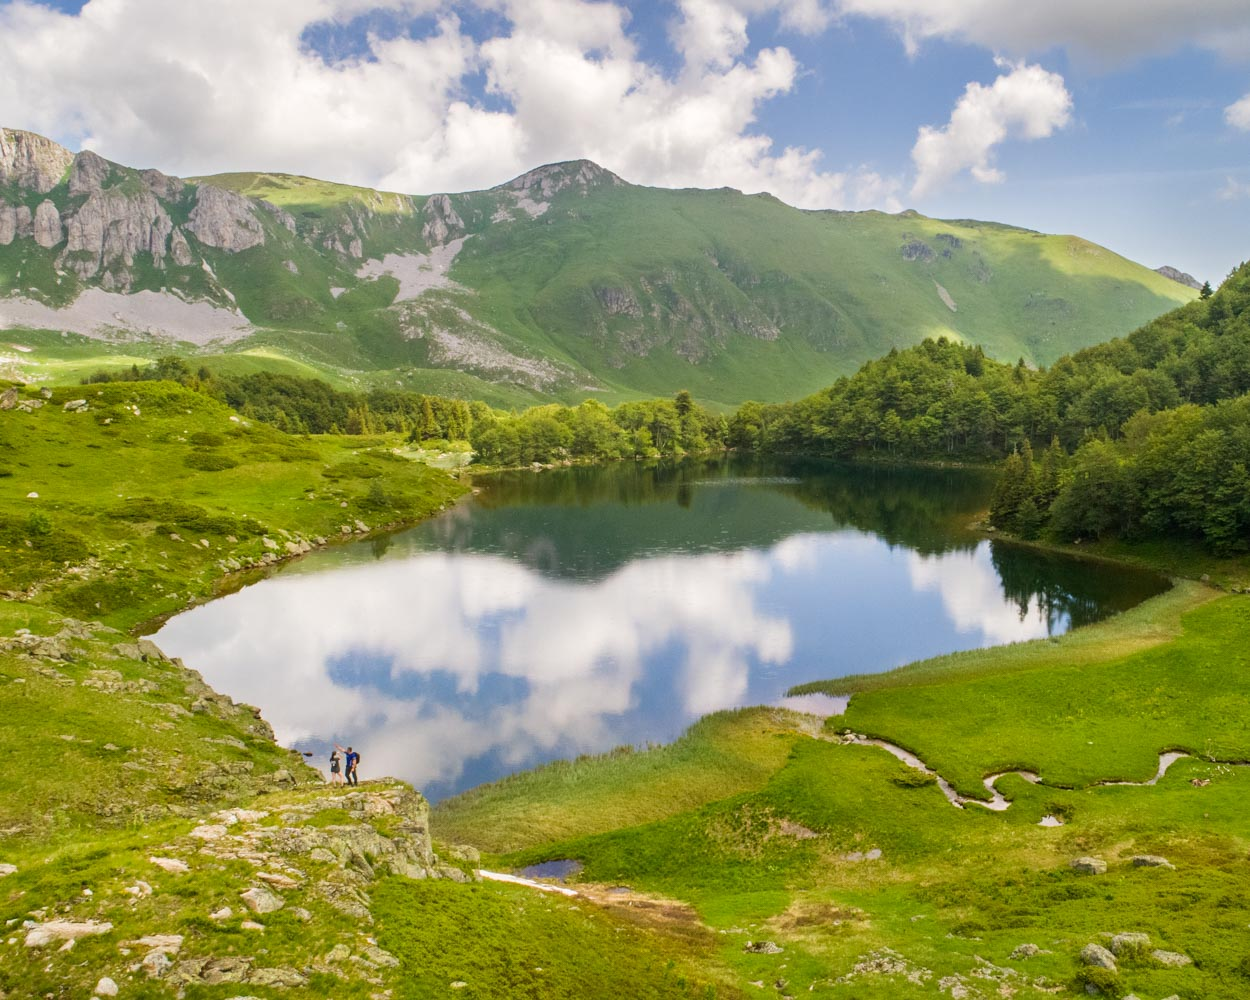 Pesic Lake or Pesica Jezero in Biogradska Gora National Park in northern Montenegro